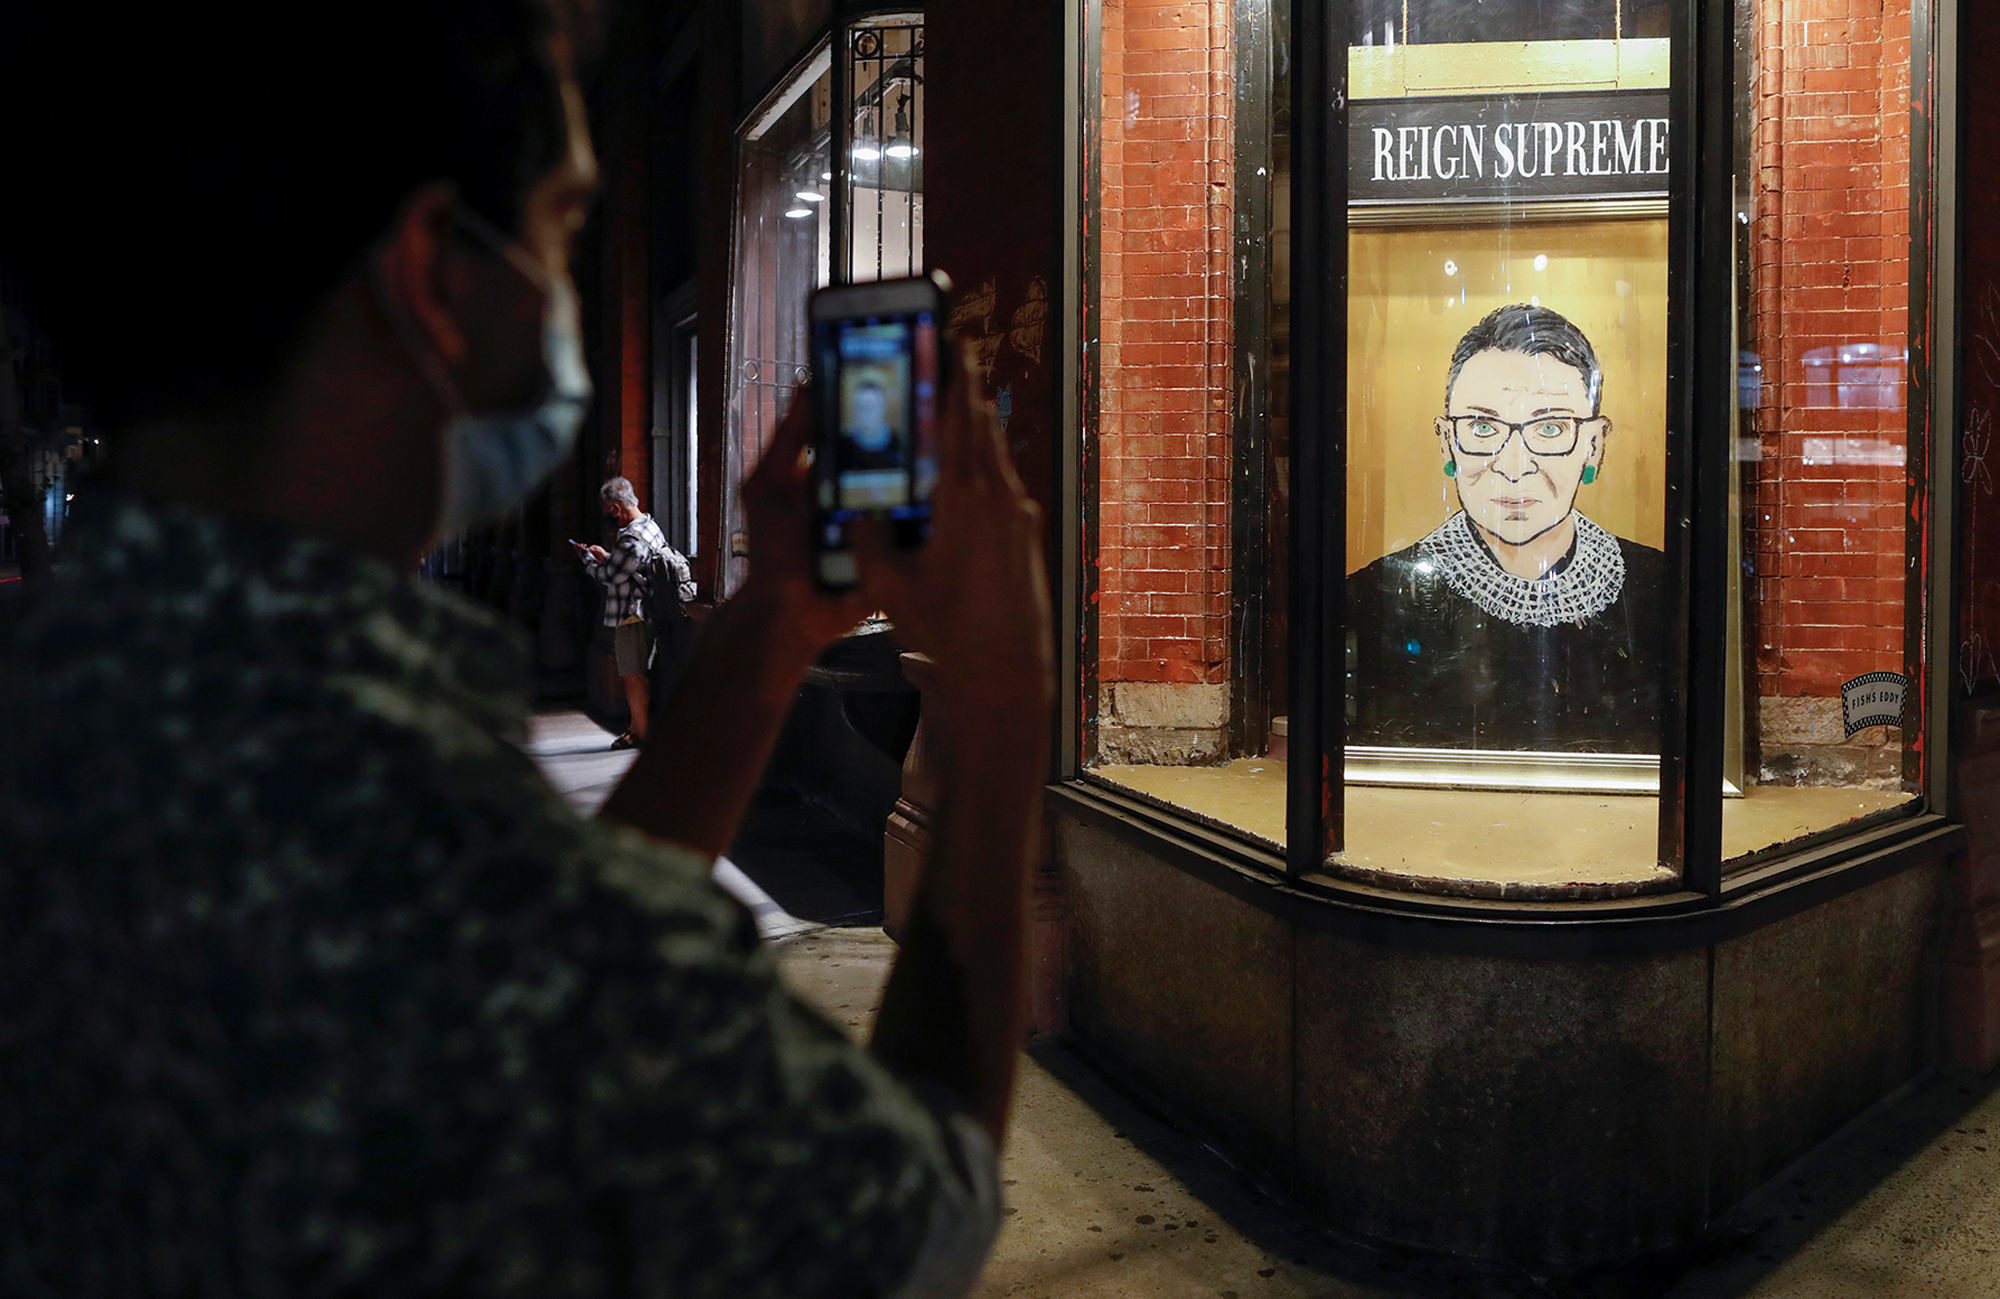 5 things to know for September 21: Ginsburg, Covid-19, Trump, UN, China